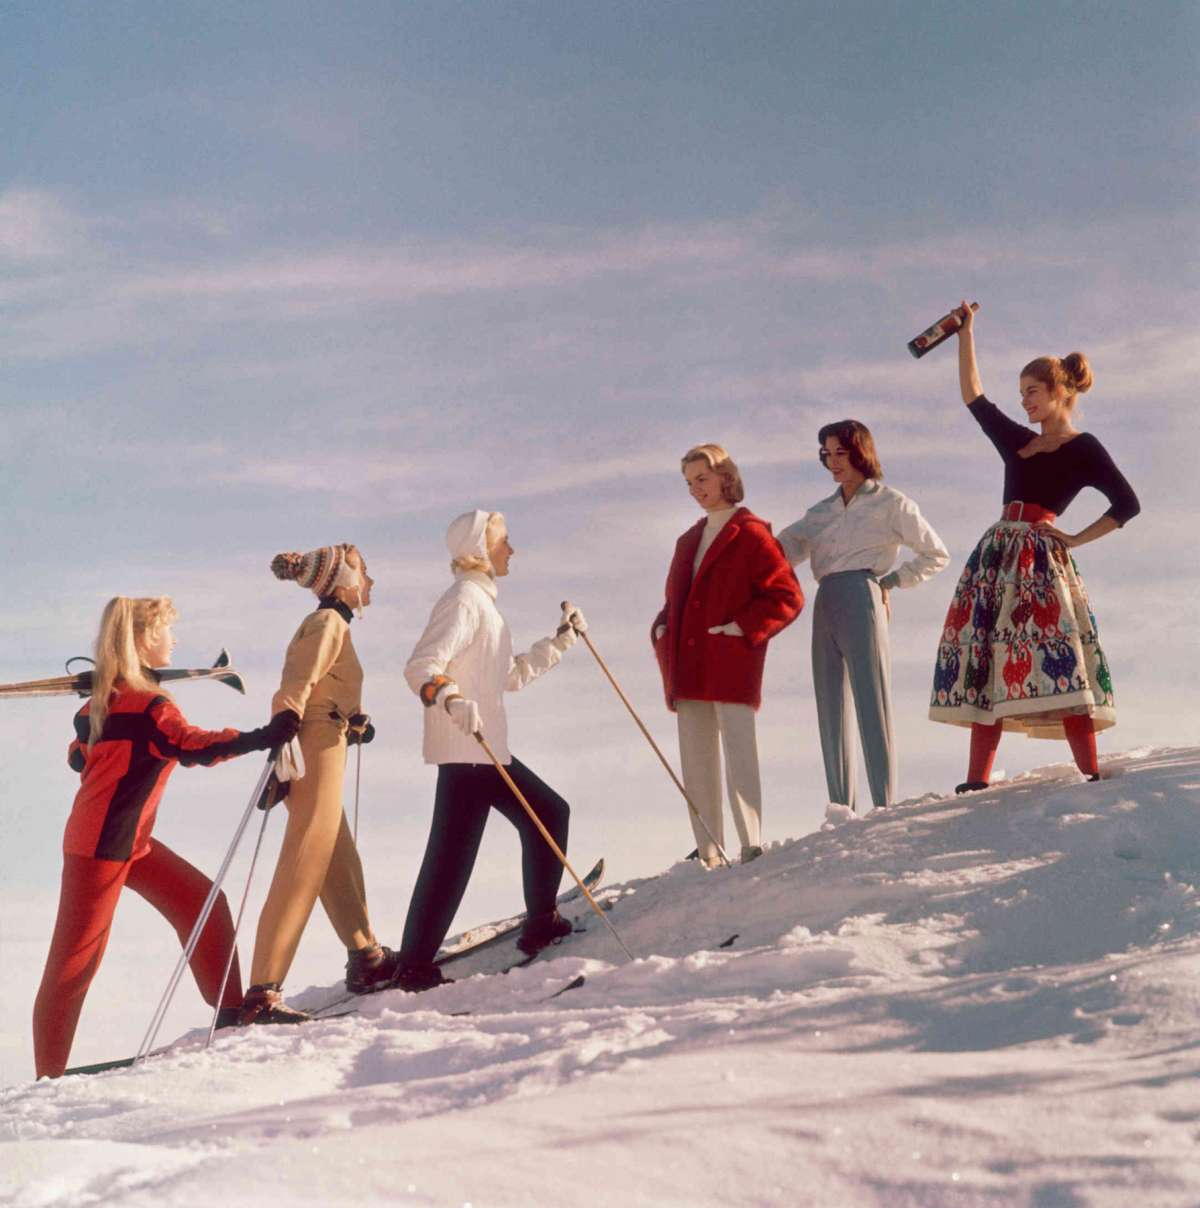 Fashion in the Alps